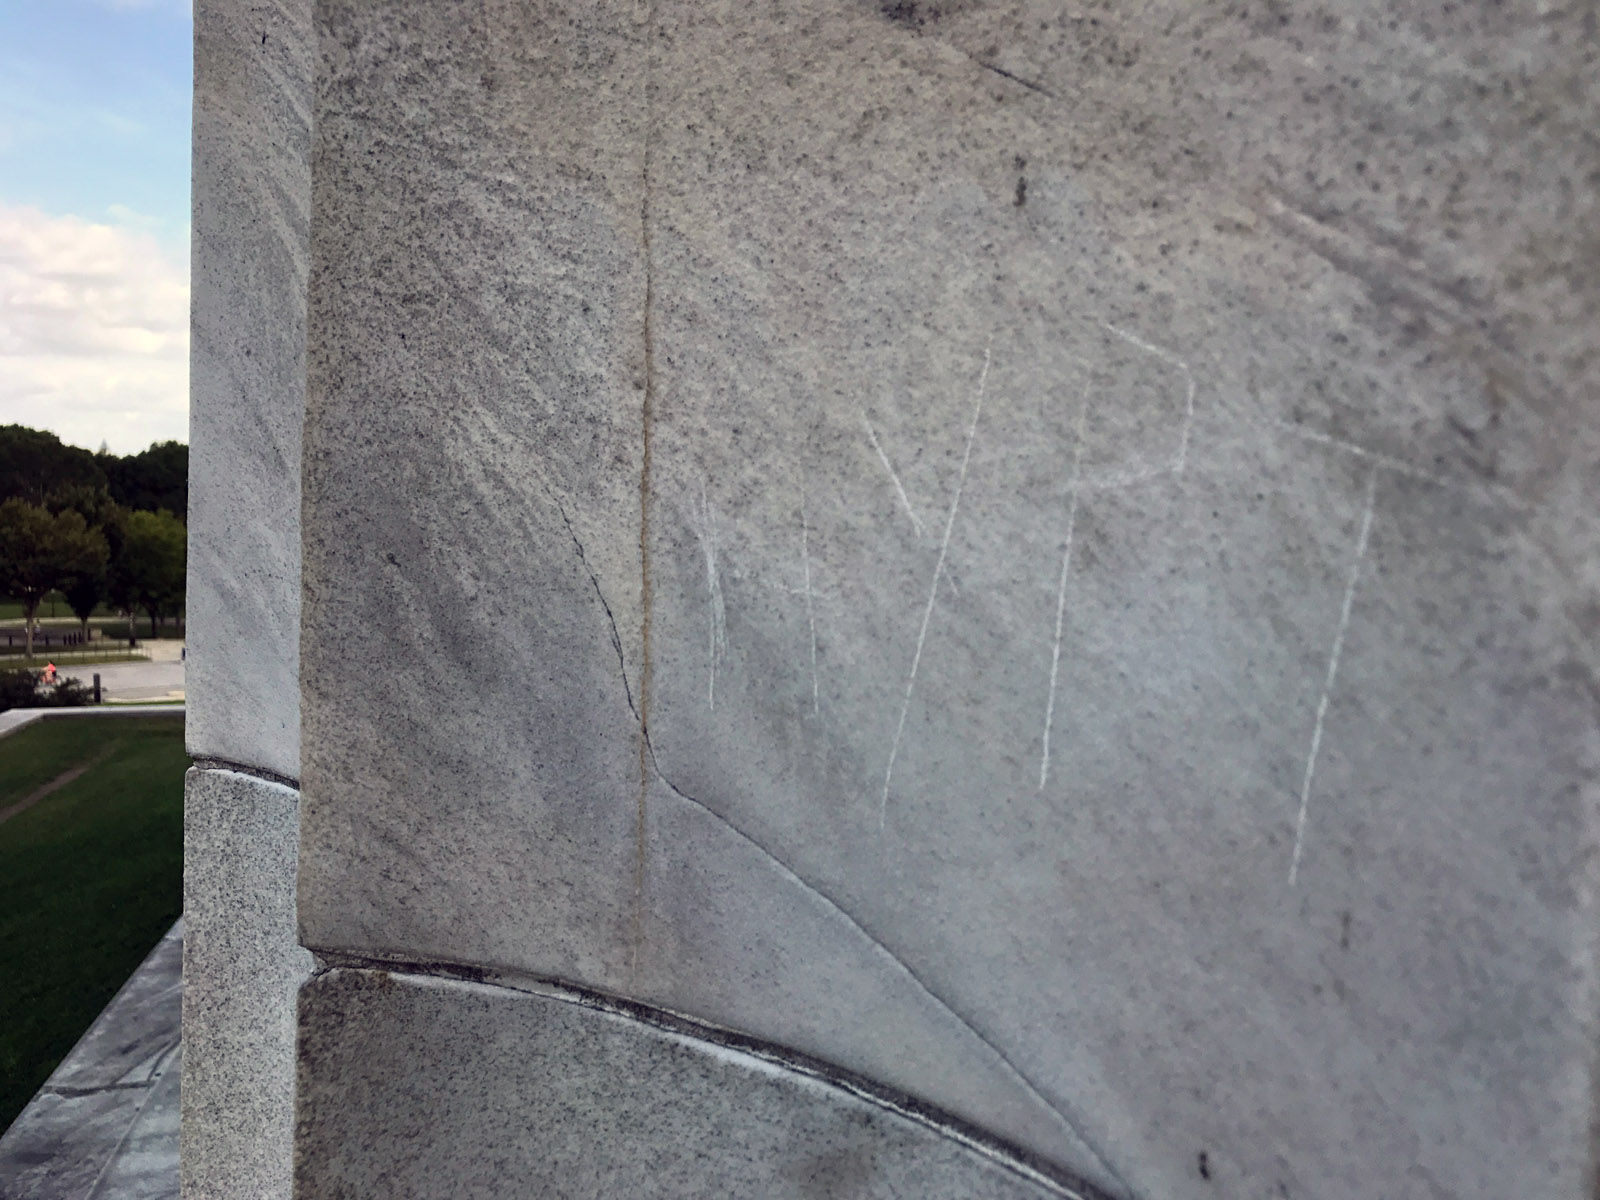 """The letters """"HYPT"""" are seen carved into the side of the Lincoln Memorial Tuesday. A man from the Kyrgyz Republic was arrested Monday on charges of defacing the Lincoln Memorial. National Park  officials said the penny he used to etch letters into a stone pillar caused permanent damage. (WTOP/Megan Cloherty)"""